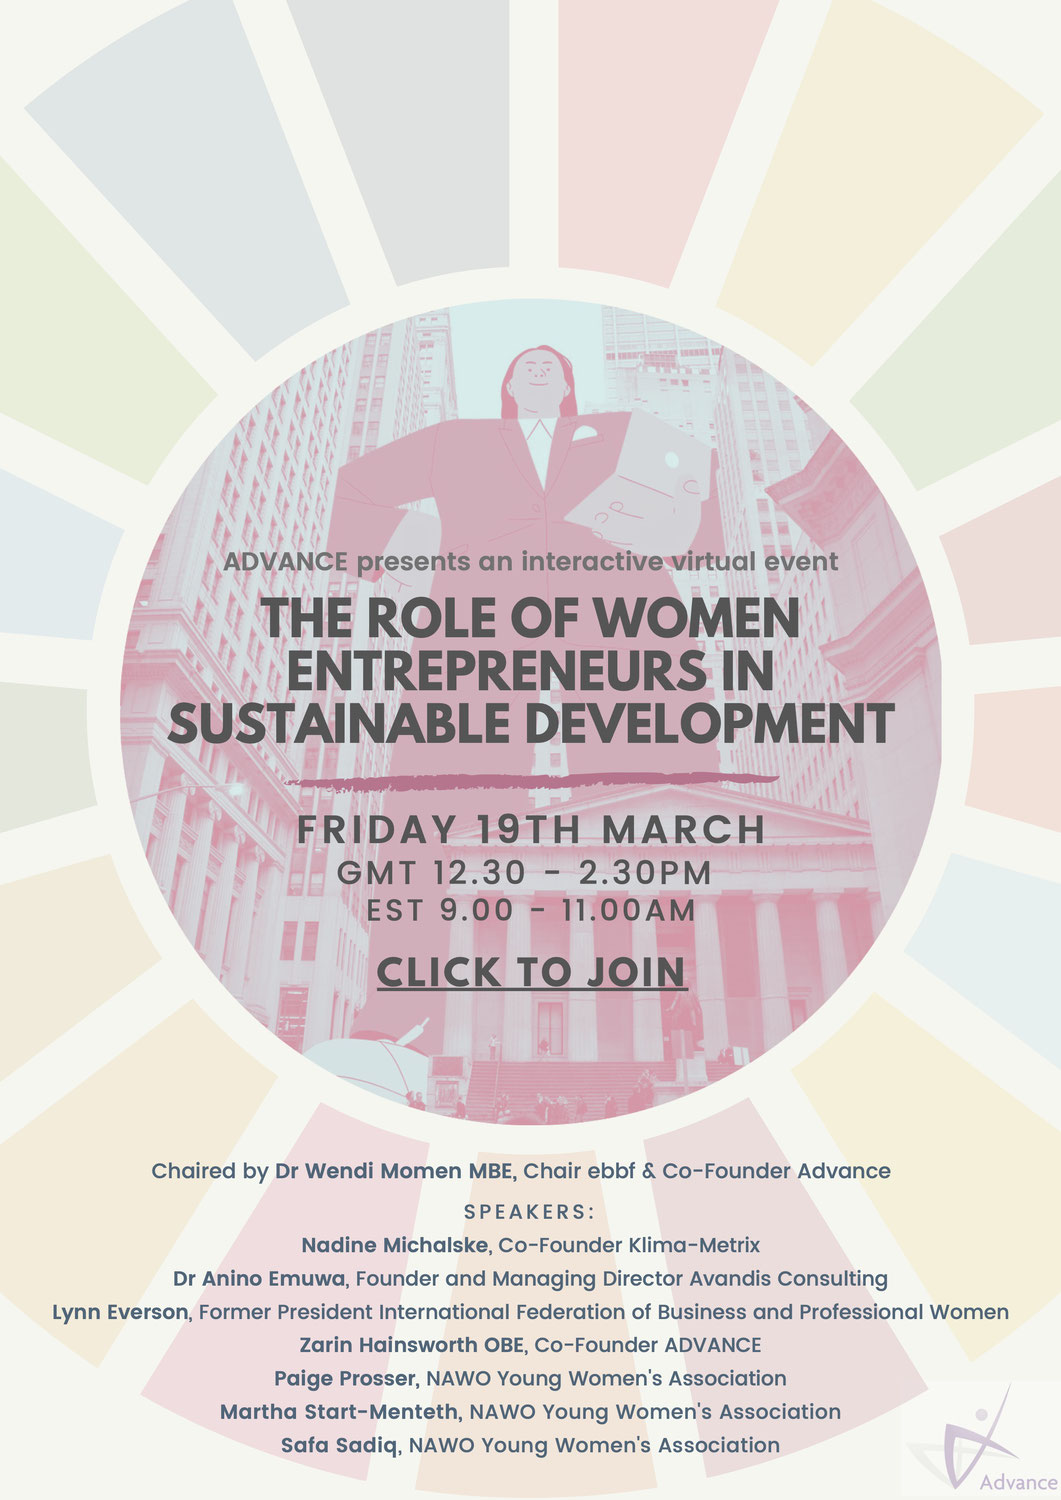 CSSW65 - The Role of Women Entrepreneurs in Sustainable Development